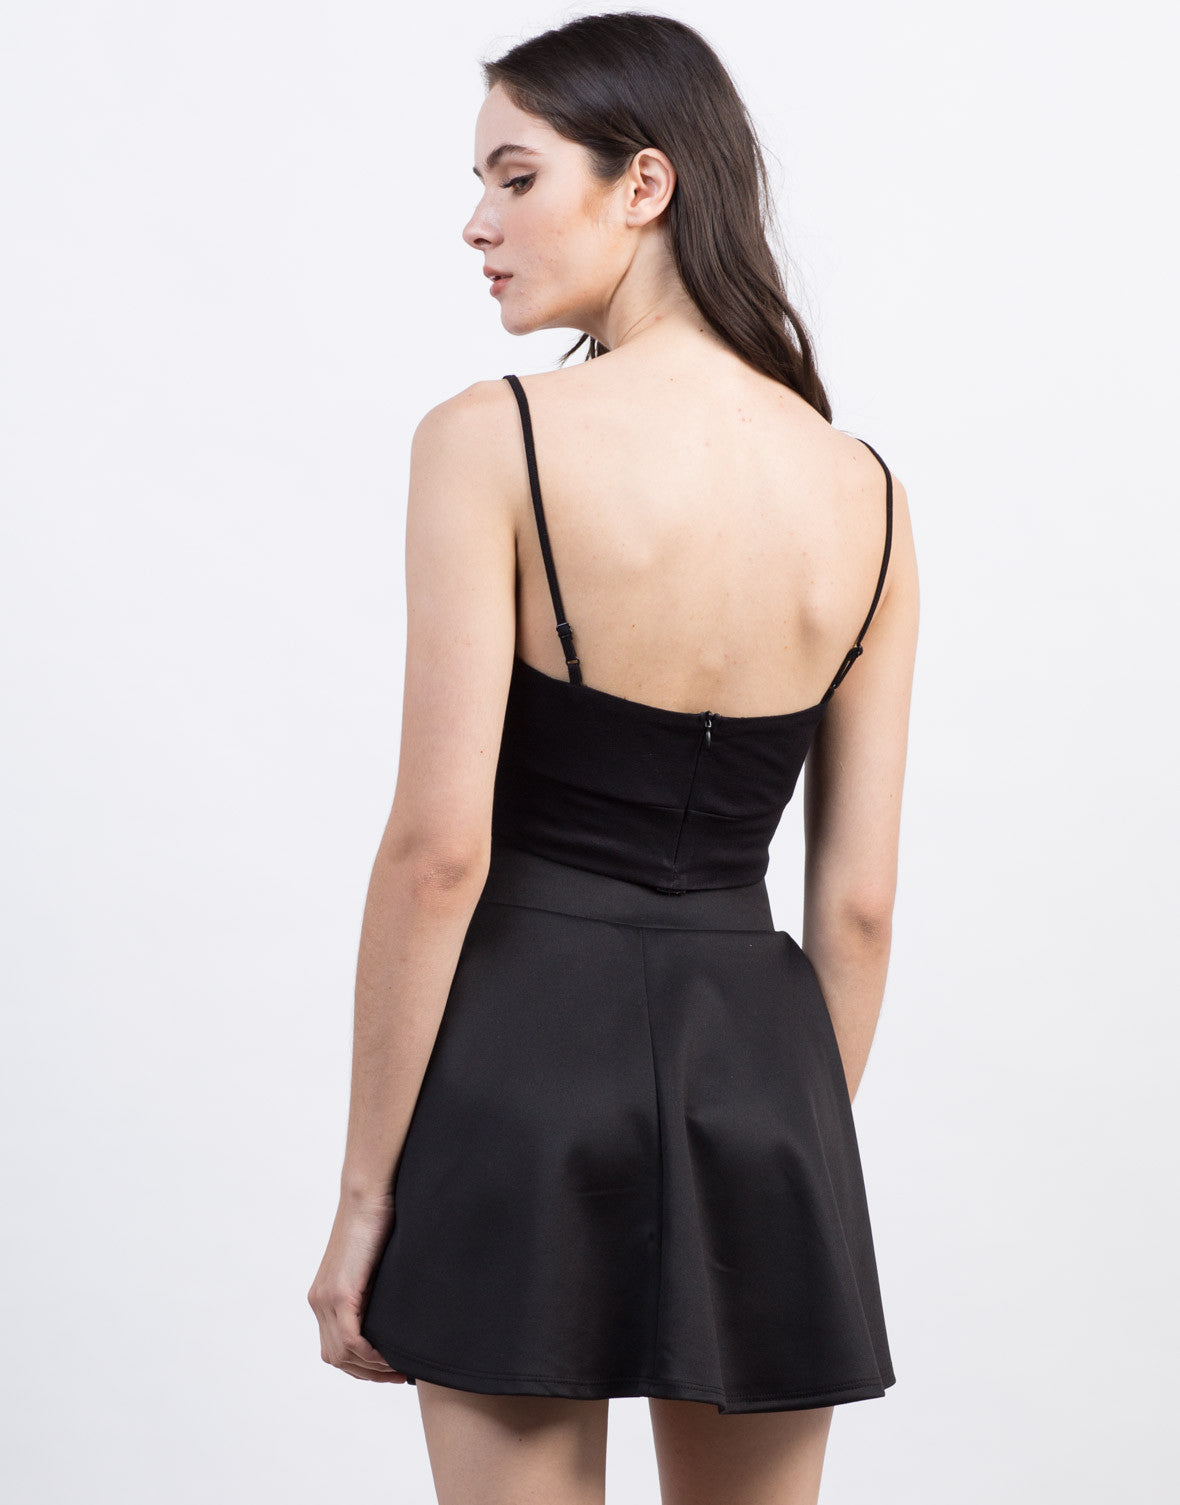 Back View of Front and Center Cropped Top